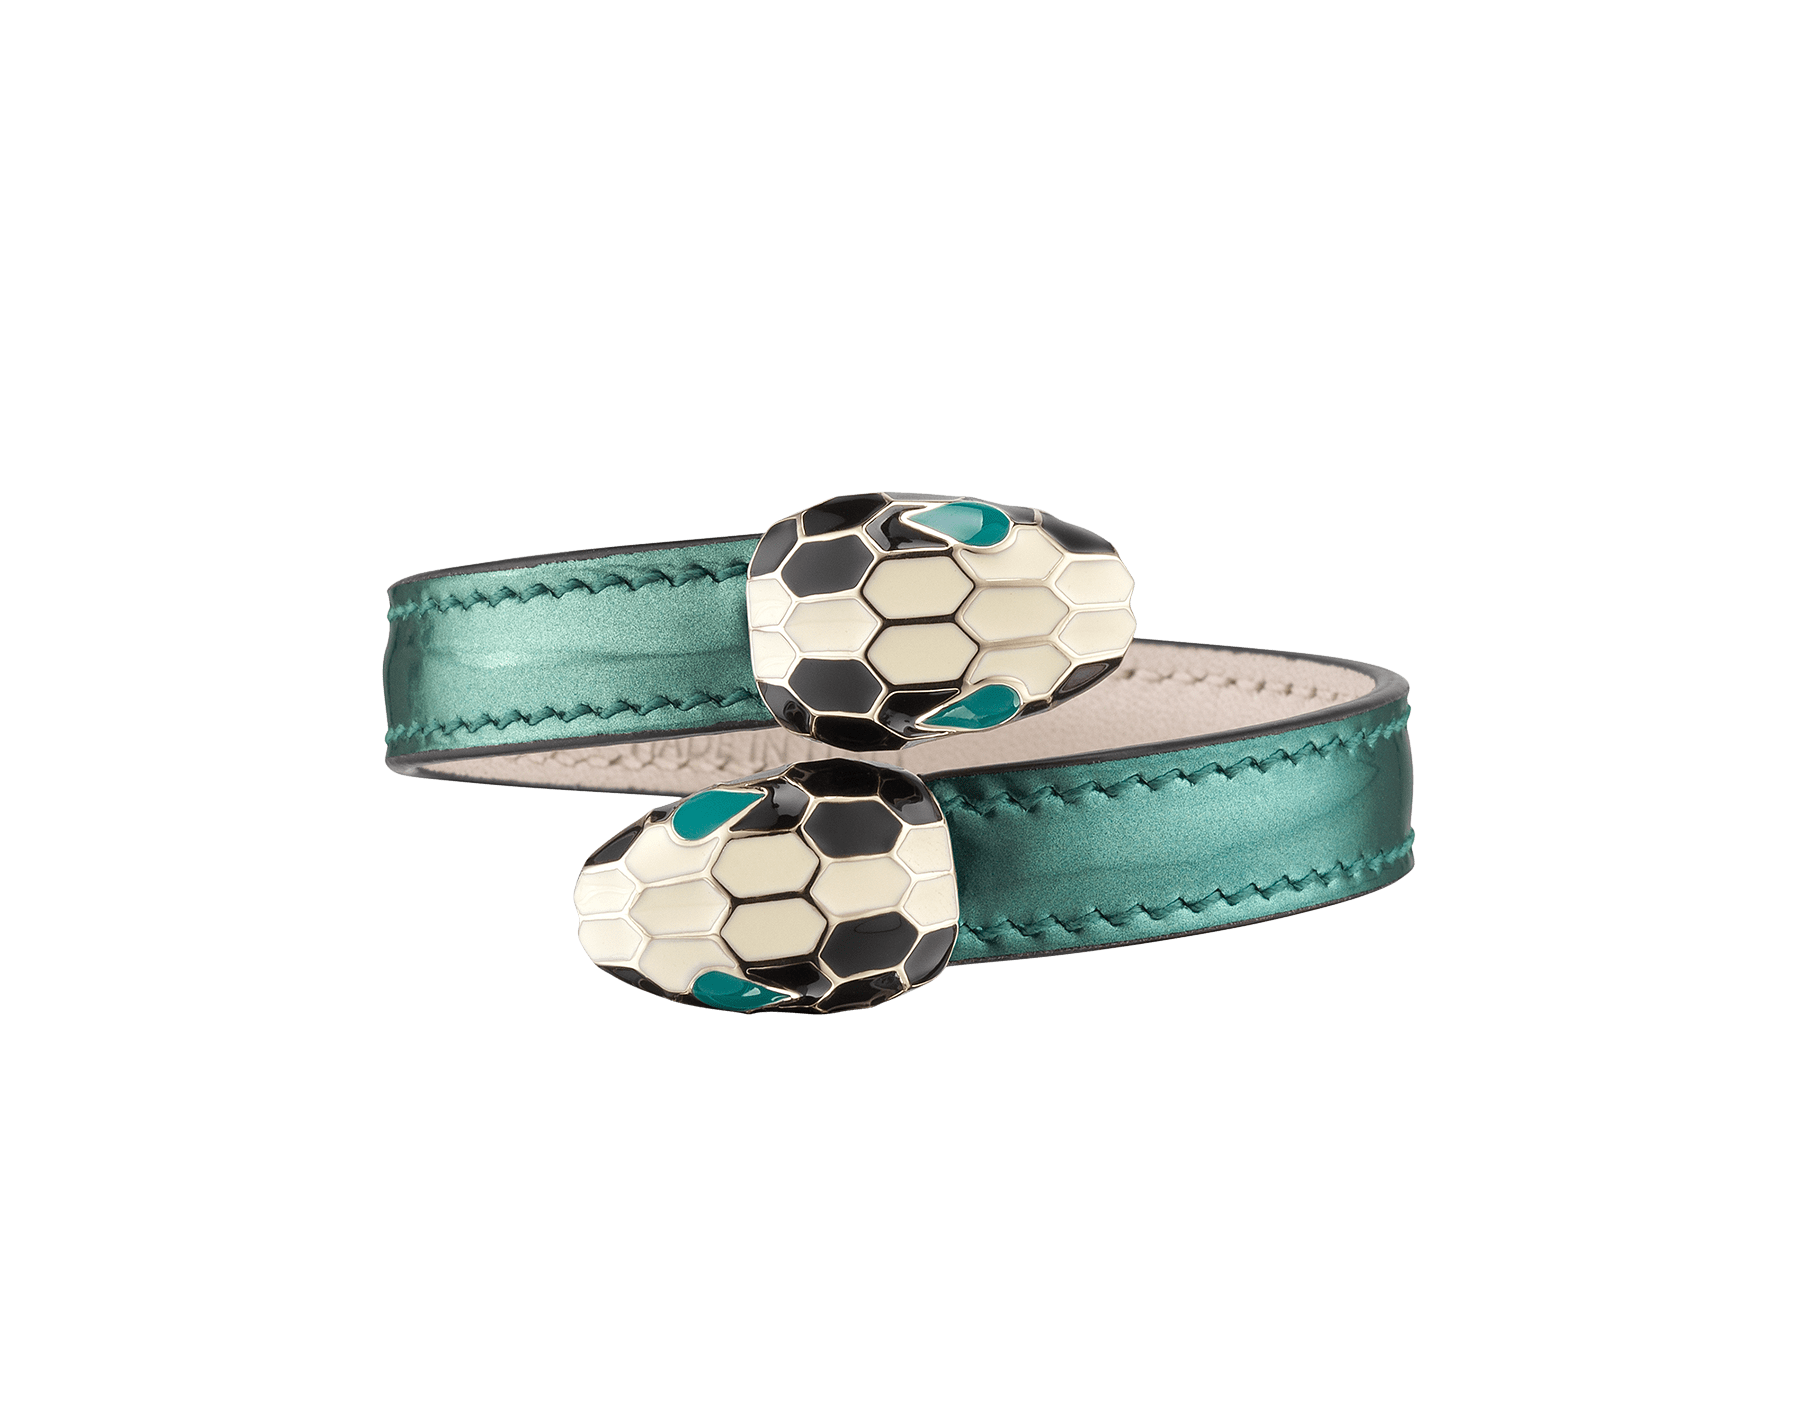 Serpenti Forever soft bangle bracelet in shiny silver brushed metallic calf leather, with brass light gold plated hardware. Iconic contraire snakehead décor in black and white enamel, with green enamel eyes. SerpSoftContr-BMCL-FE image 1